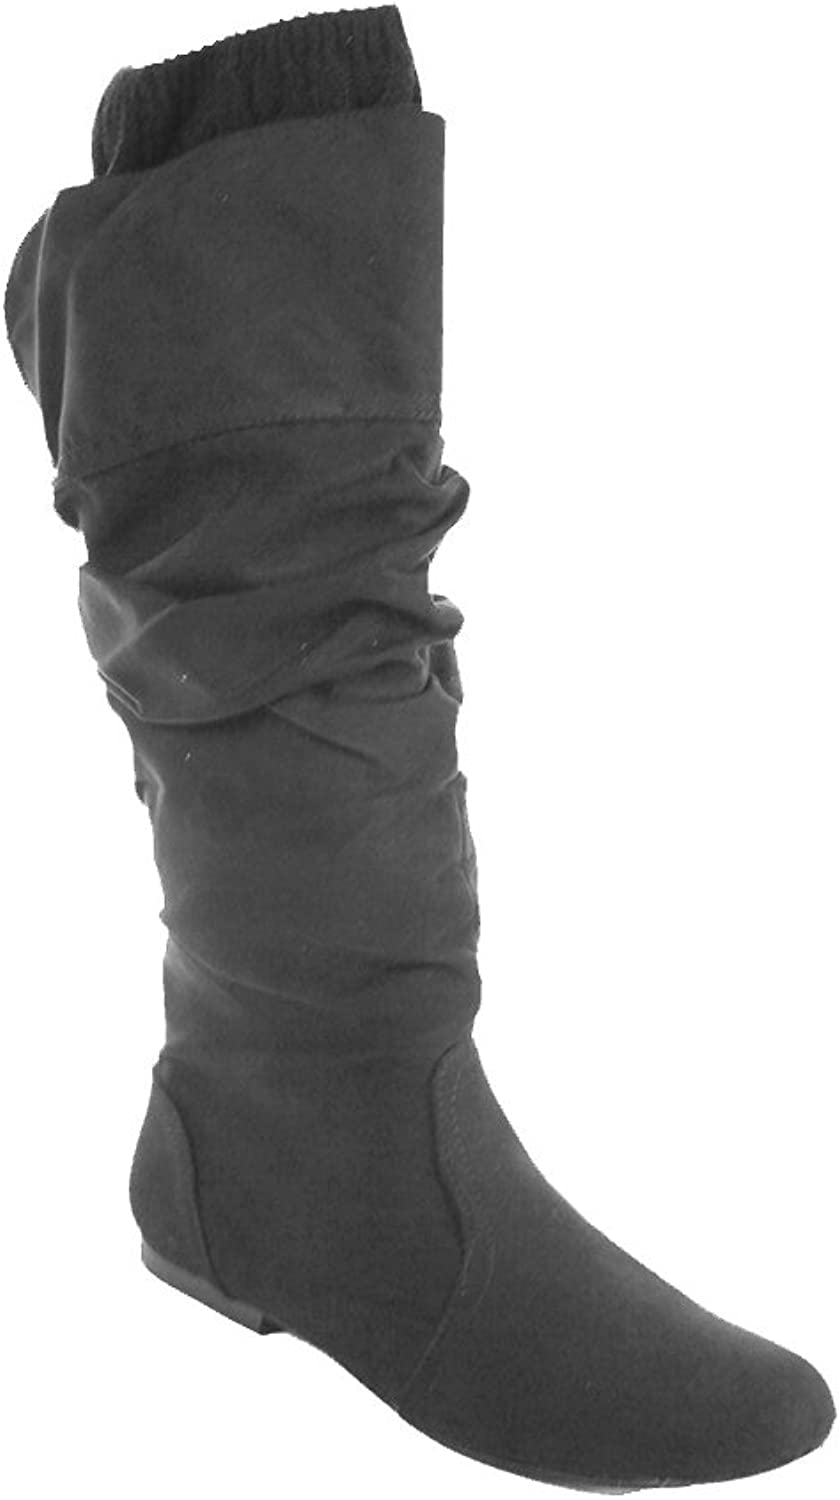 OTFL Qupid Womens Faux Suede Knee High Flat Slouchy Sweater Boots Charcoal 7